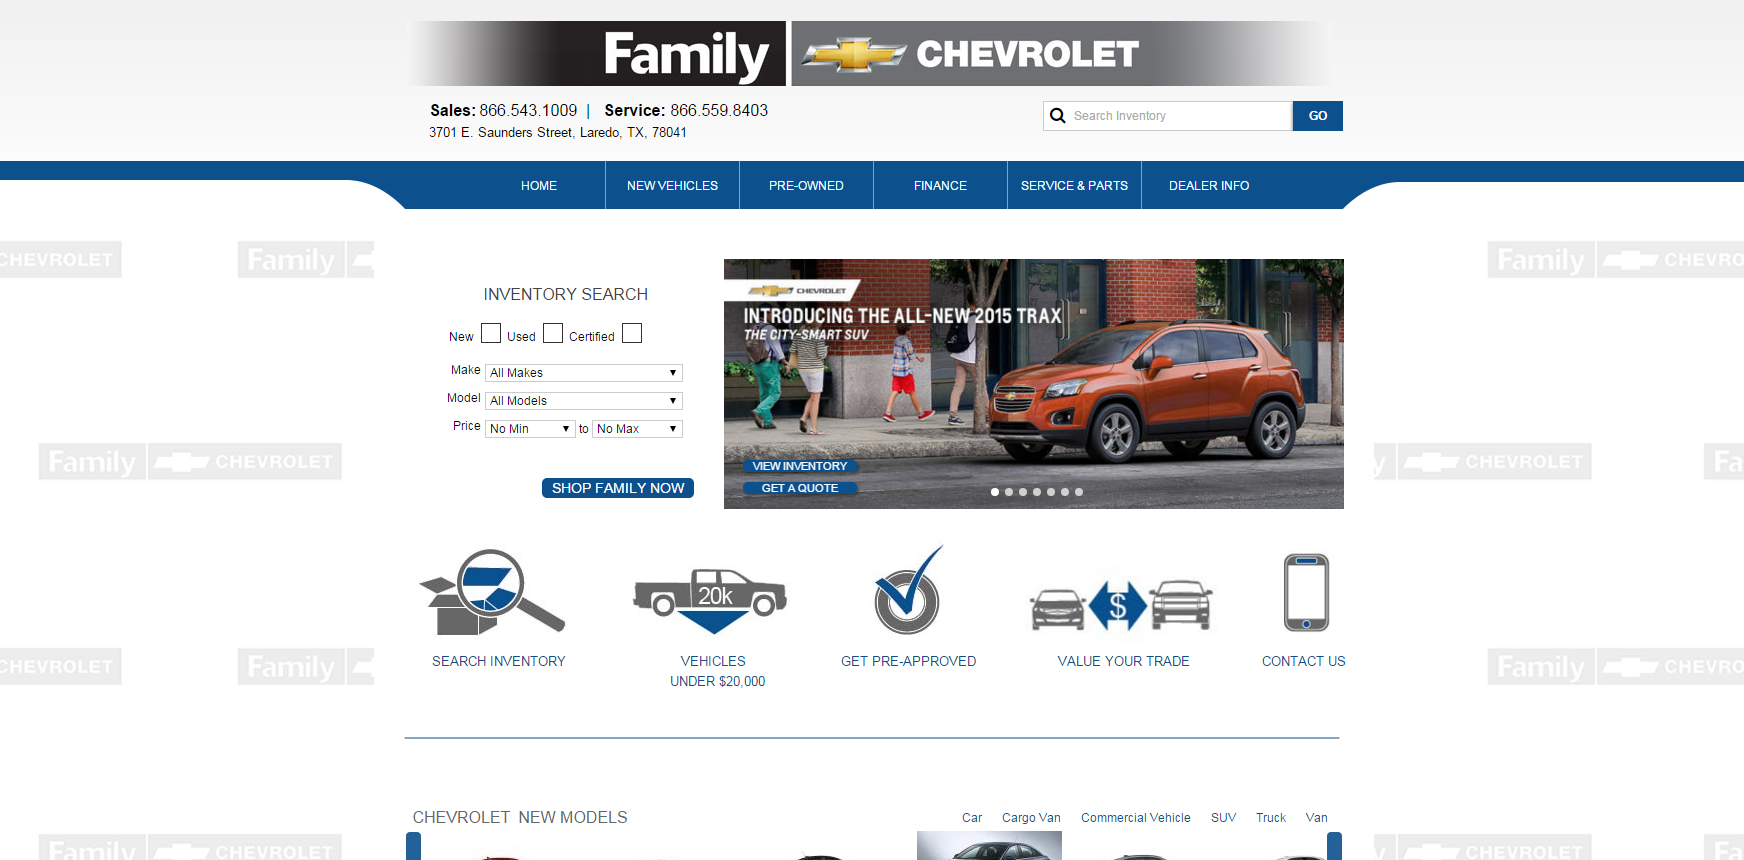 Family Chevrolet (After) 1.1